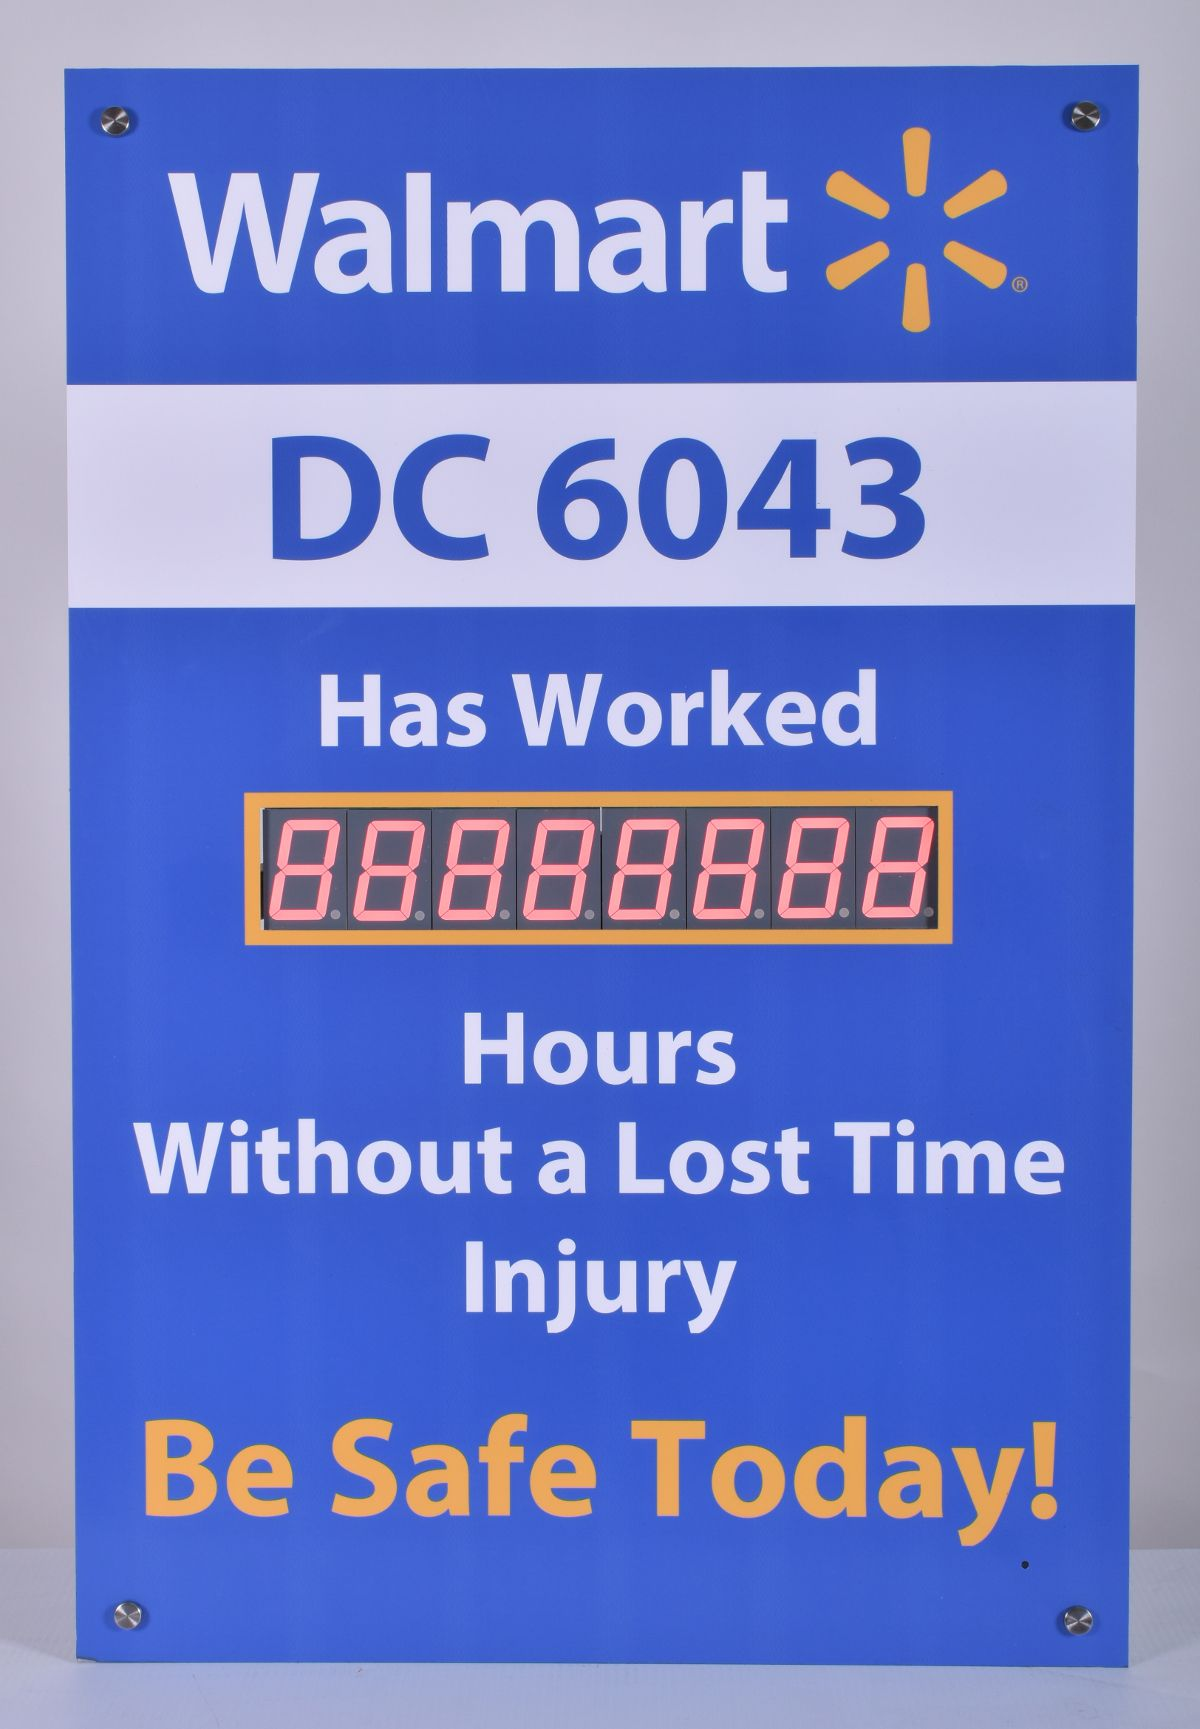 Hour Tracking Safety Record Signs (36Hx24W) Count days